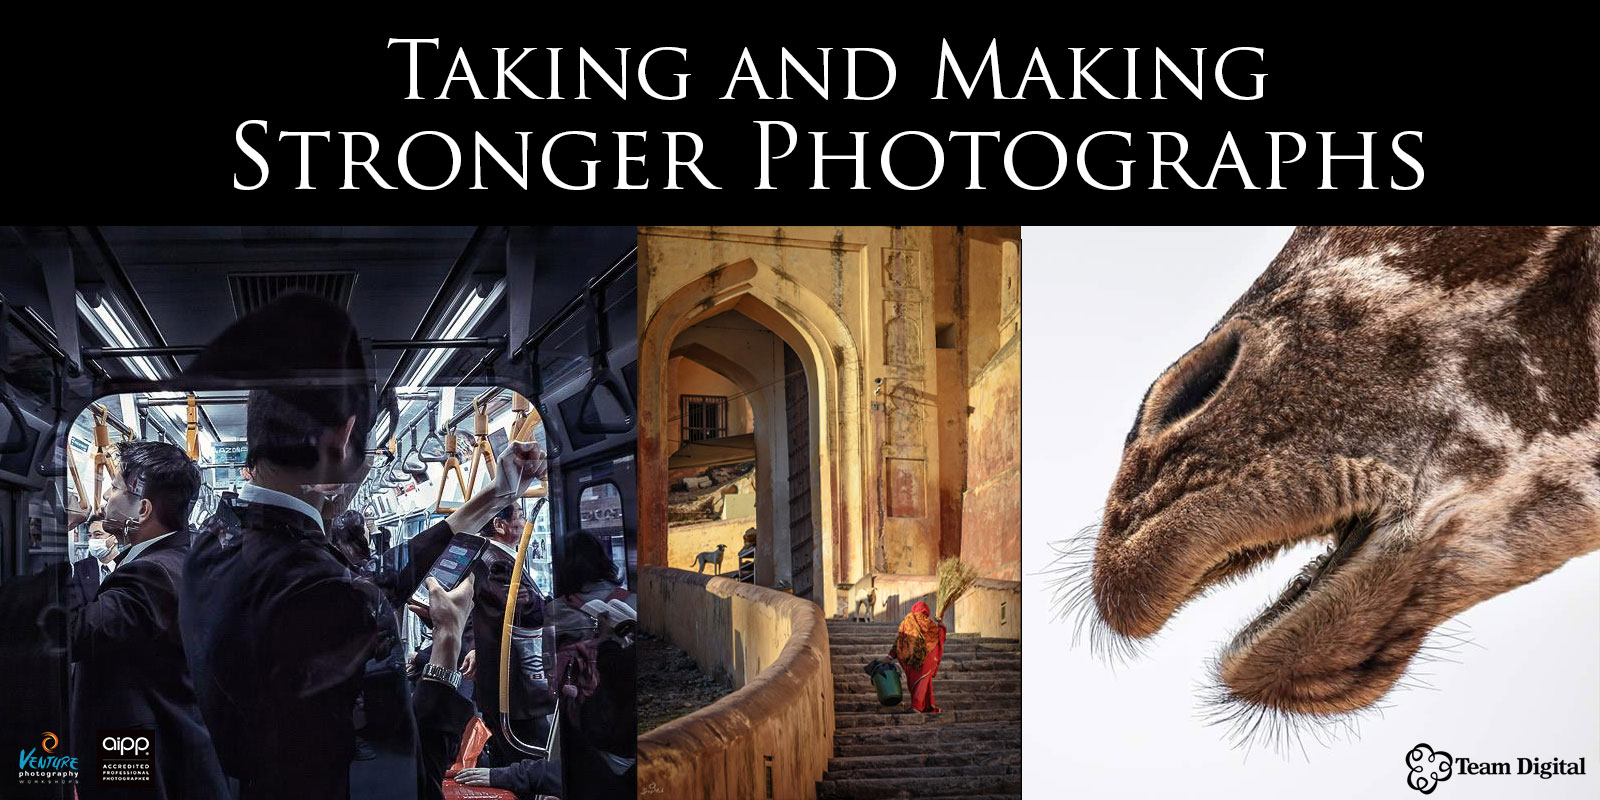 Taking and making stronger photographs